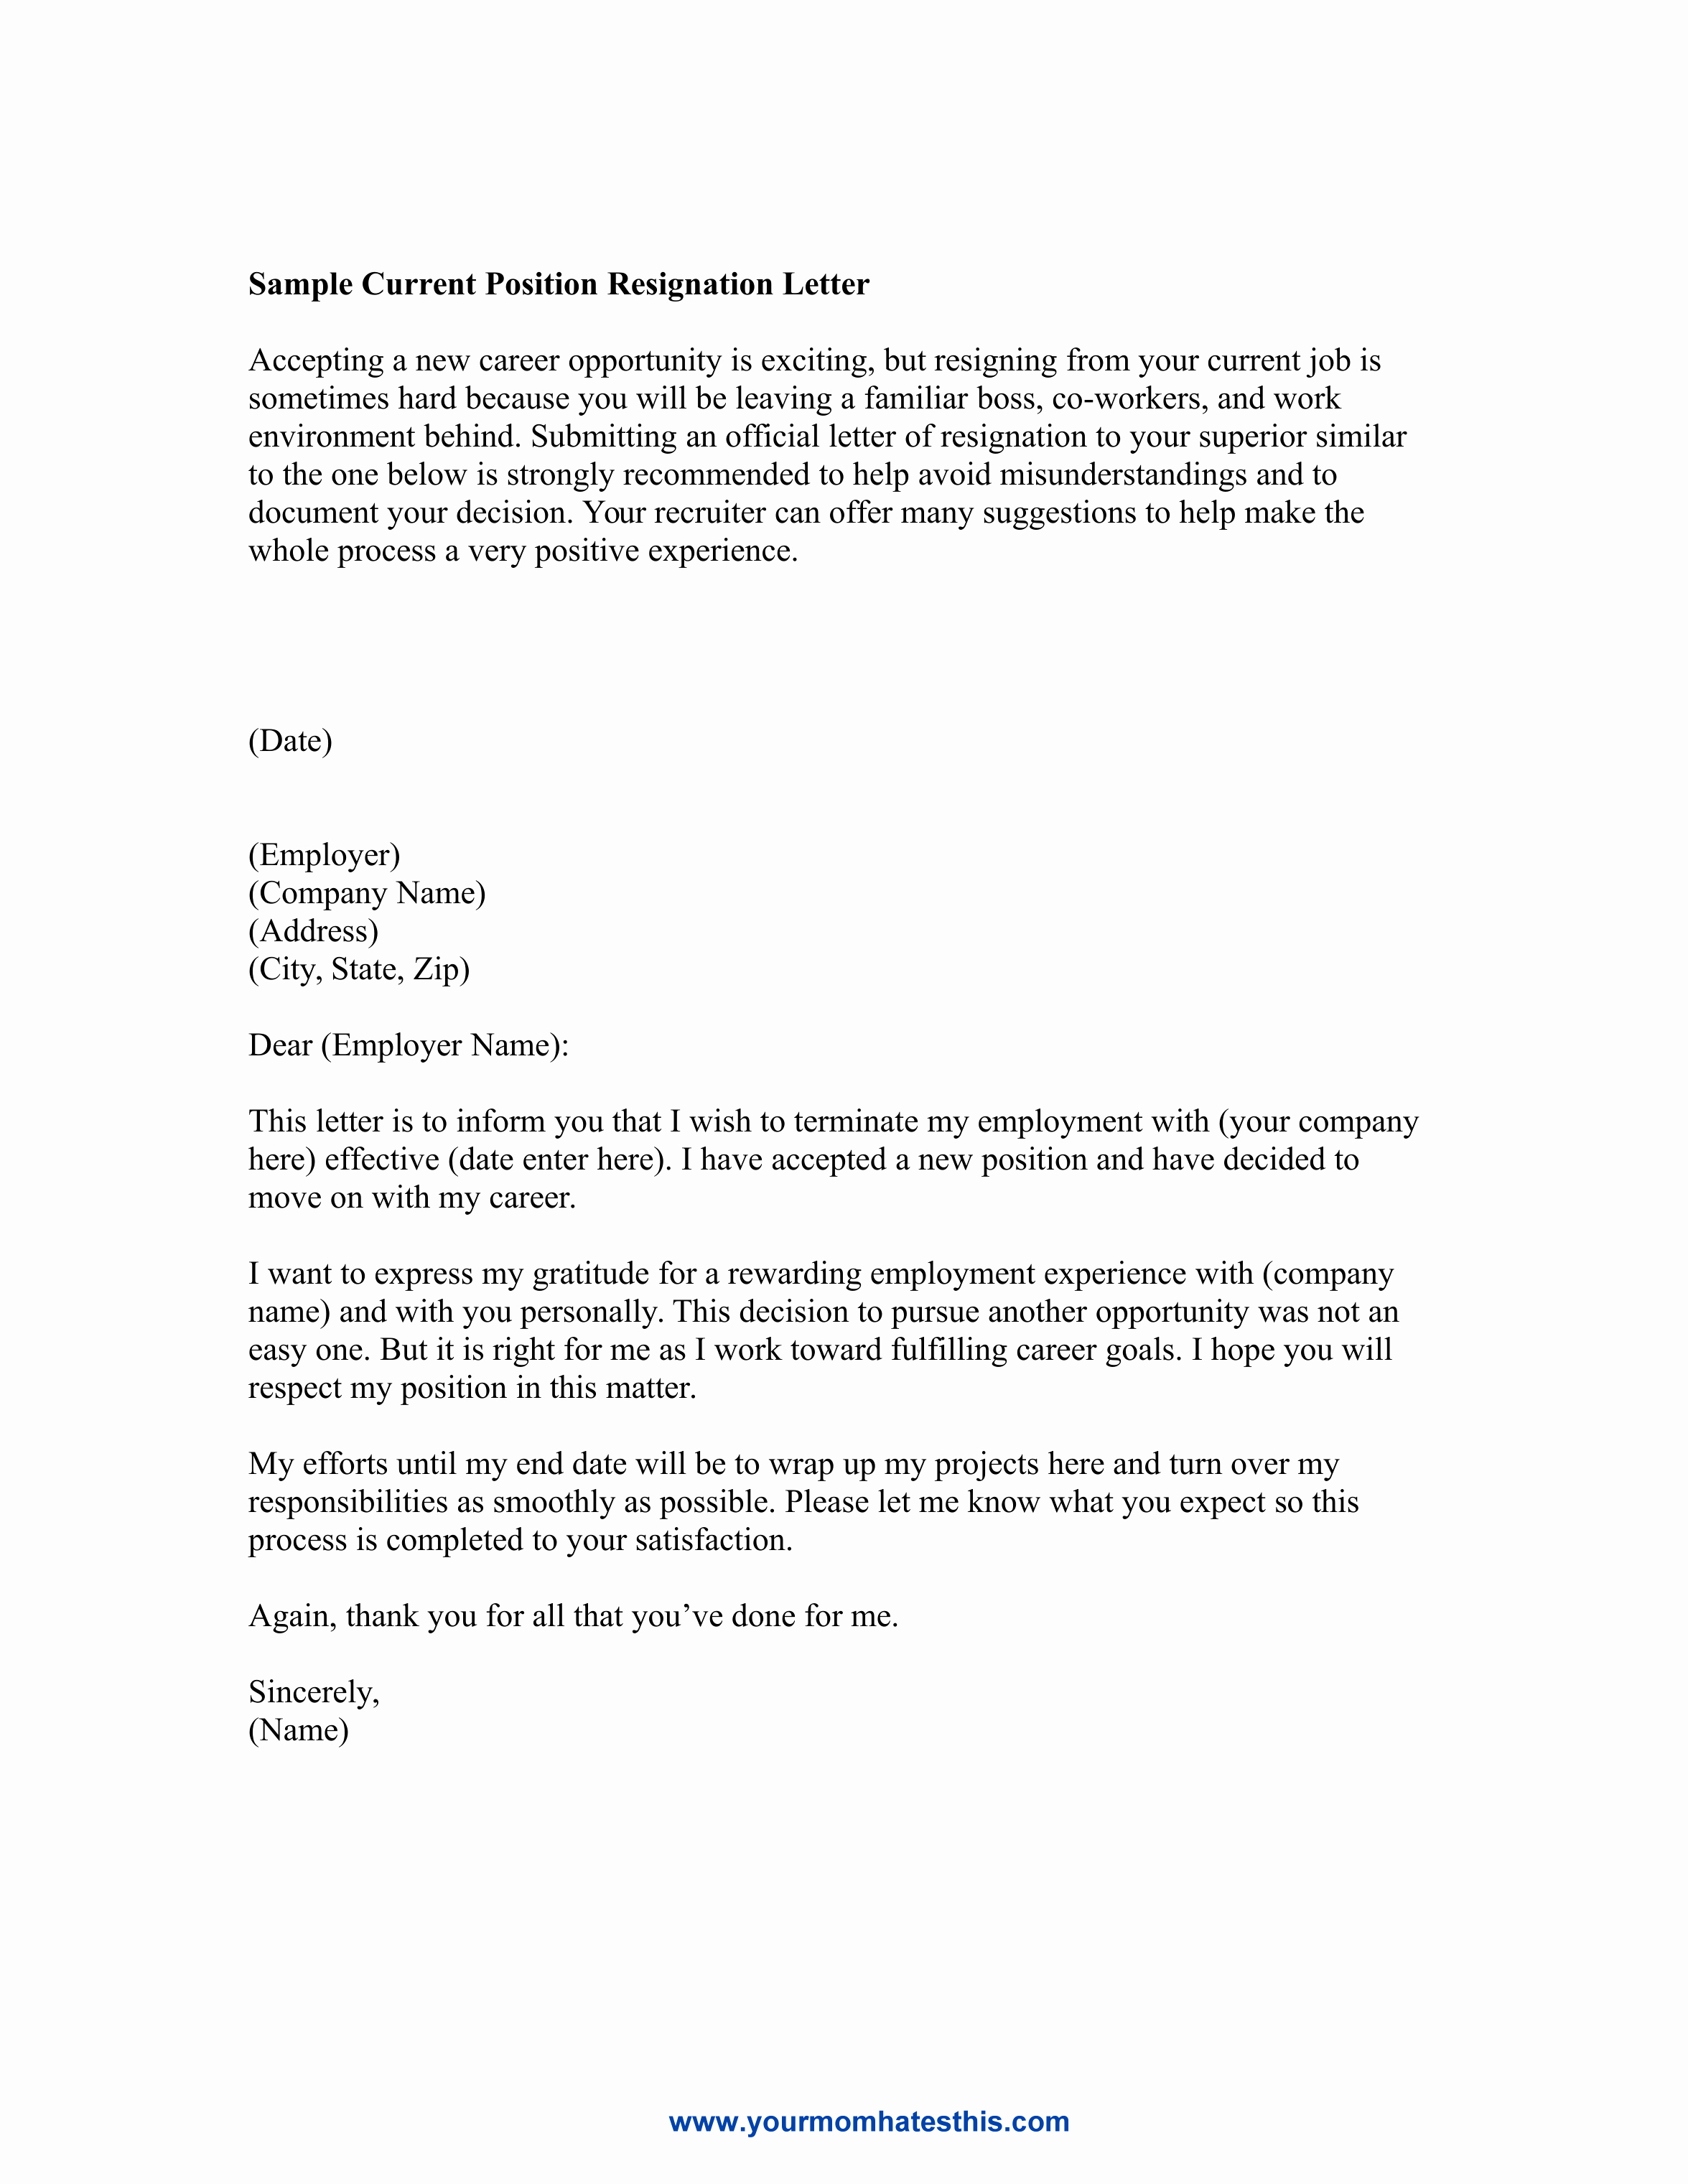 Resignation Letter Sample Luxury Dos and Don'ts for A Resignation Letter